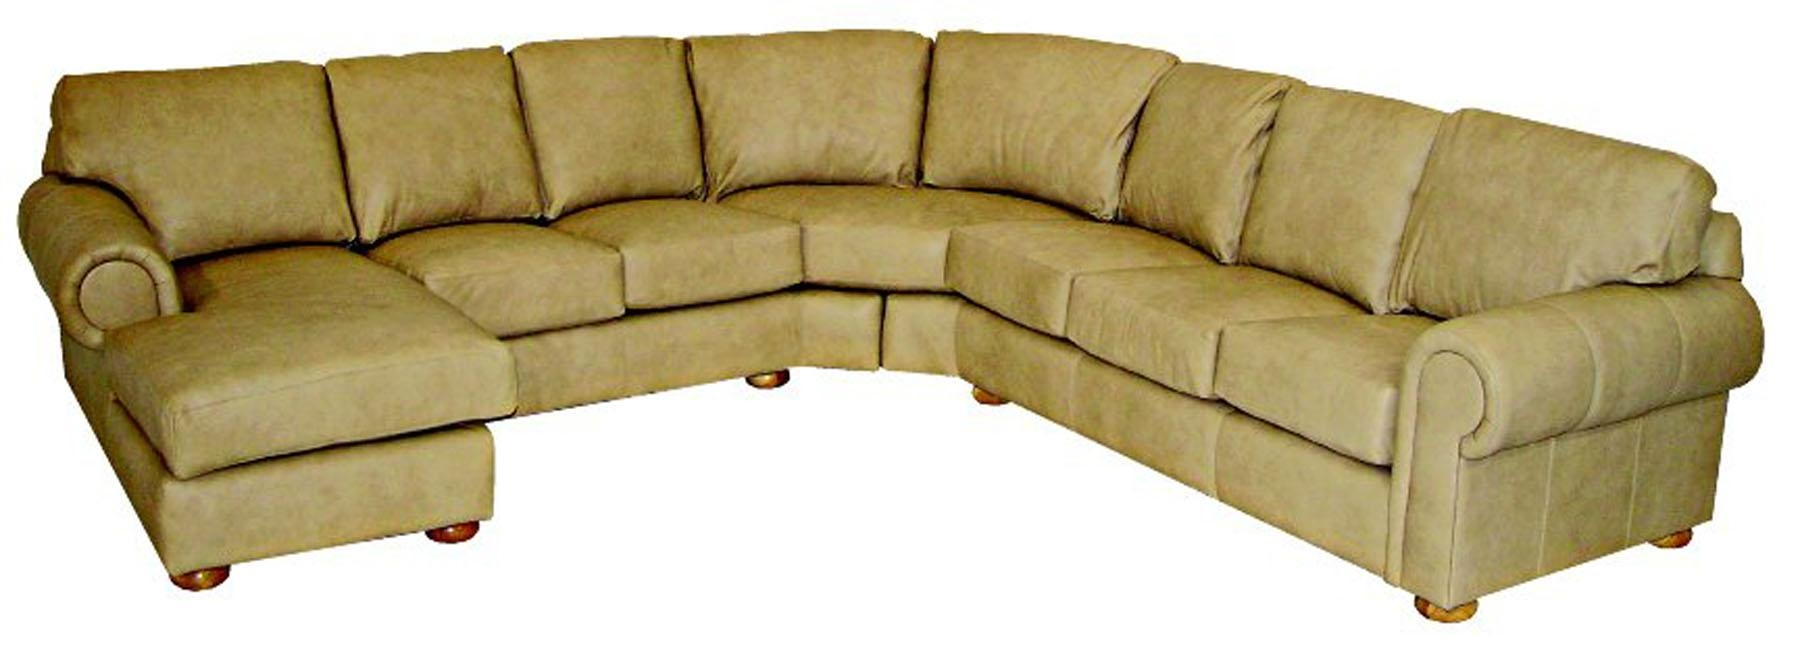 Custom Leather Sectionals Pertaining To Custom Leather Sectional (Image 9 of 15)